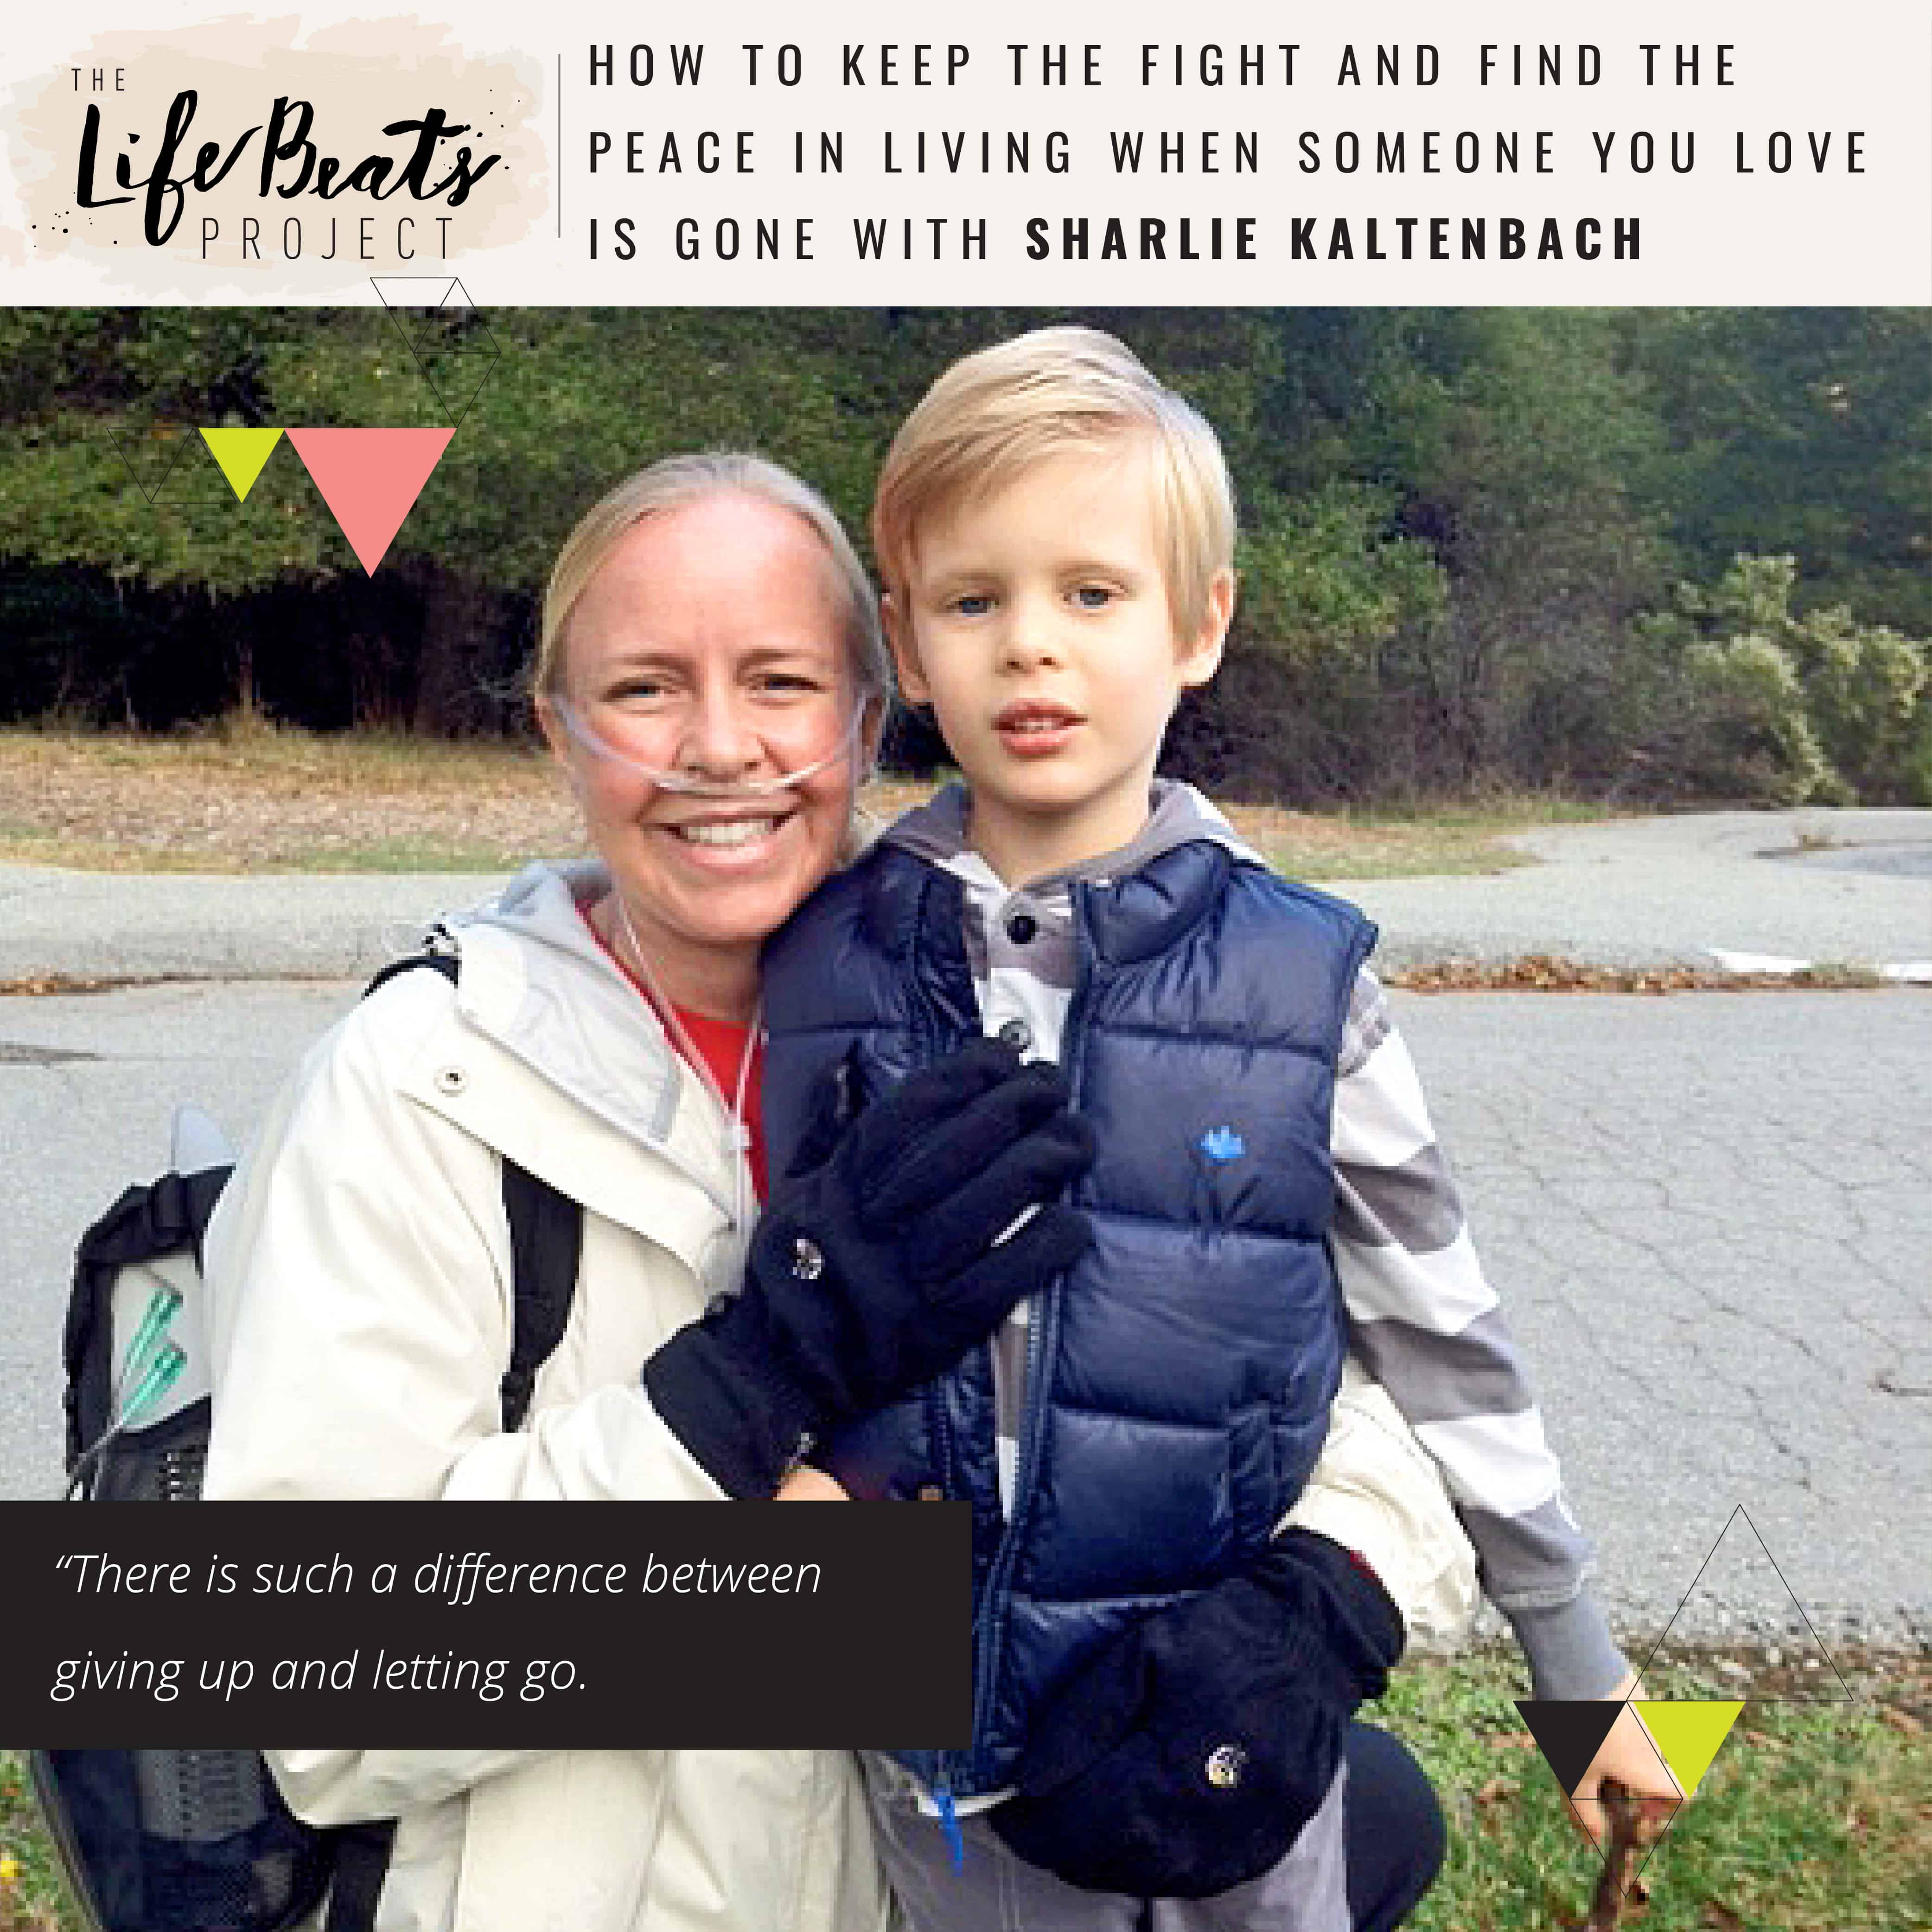 how to keep the fight and find the peace in living when someone you love is gone podcast cystic fibrosis